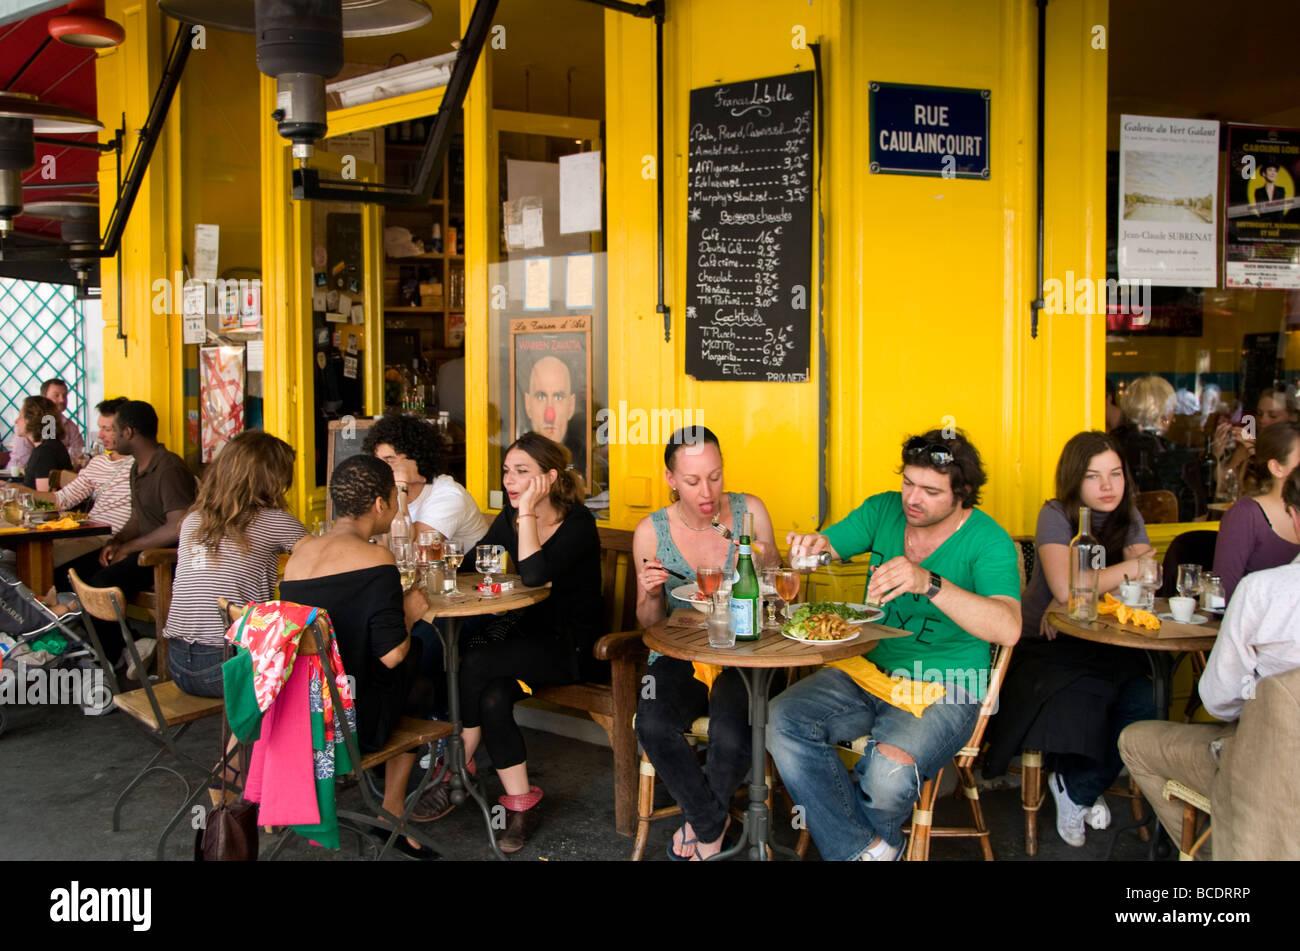 Paris France French Restaurant Cafe Bar Pub - Stock Image